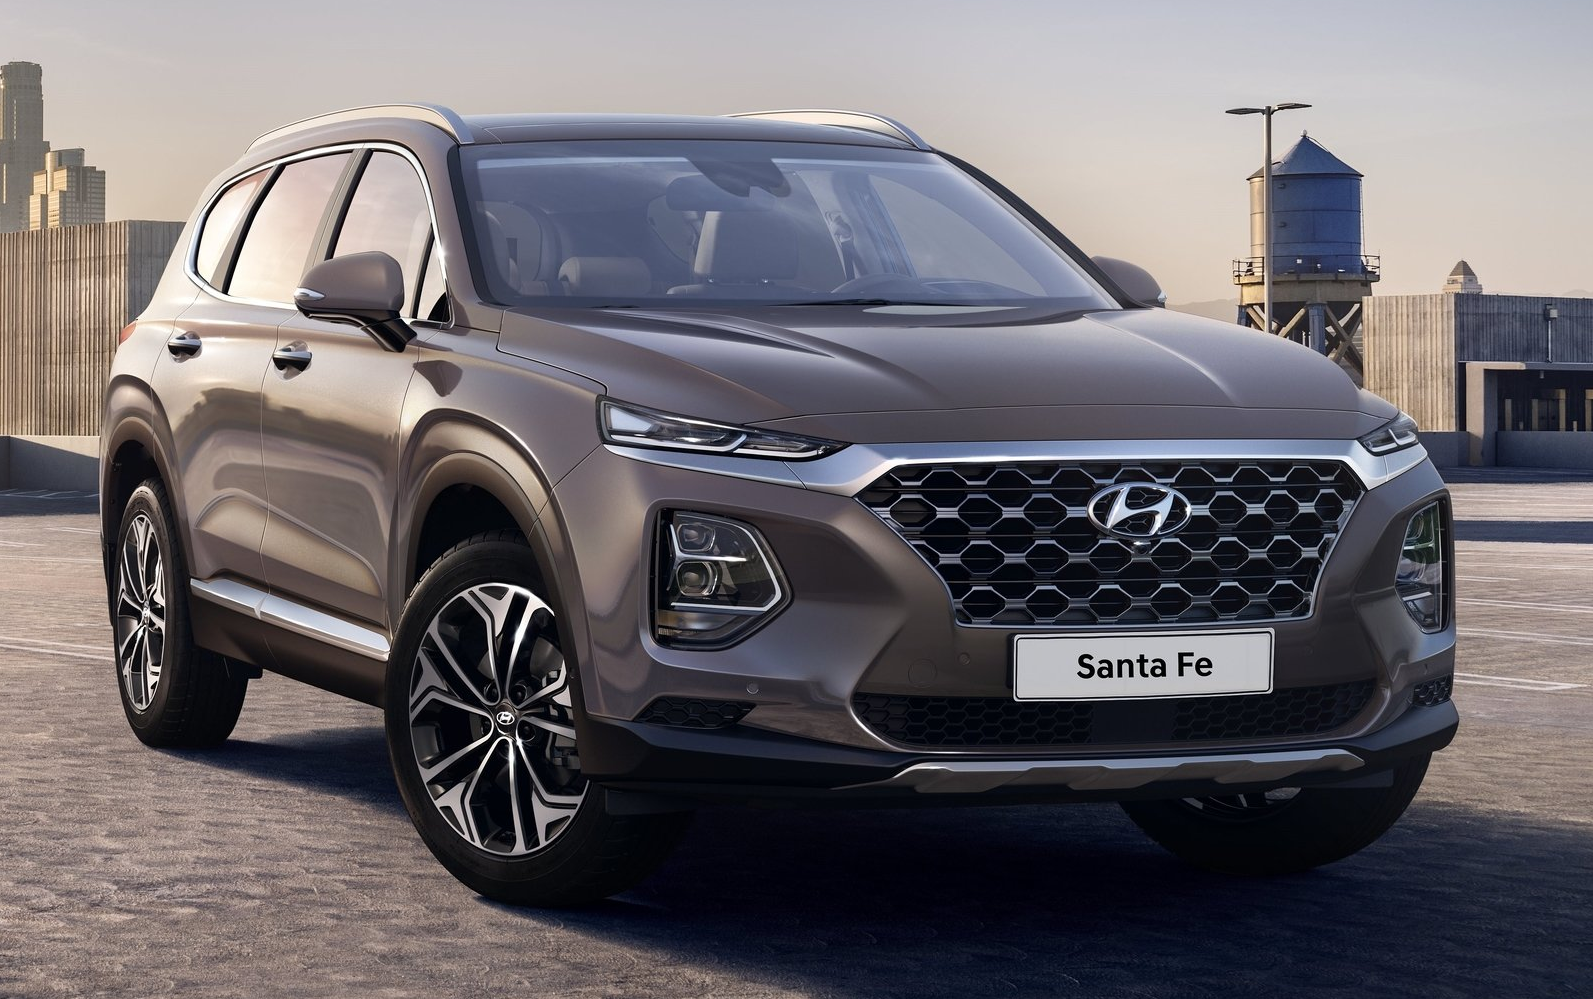 2019 Hyundai Santa Fe: The Next-Generation Crossover